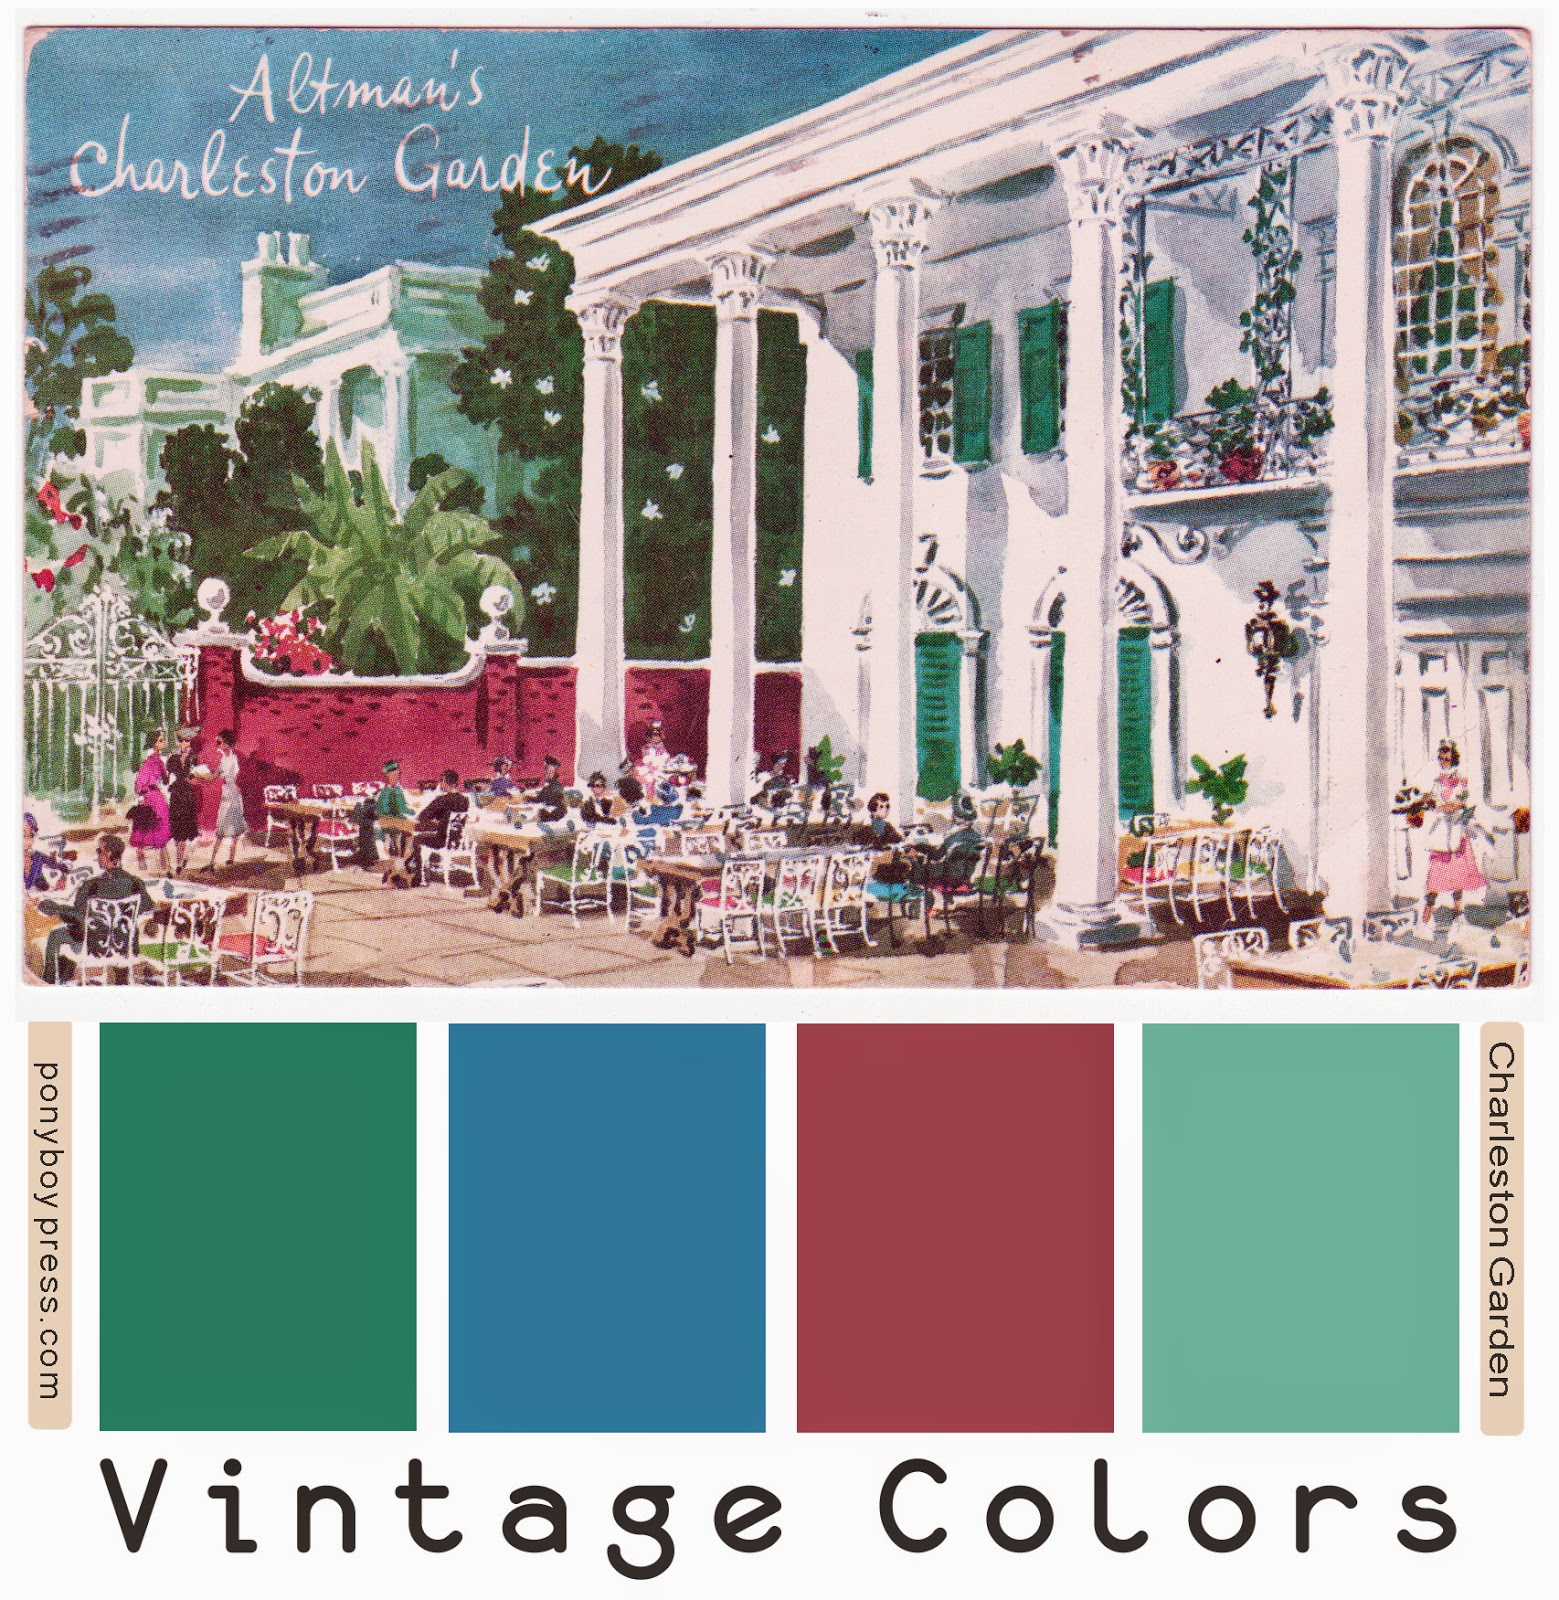 Vintage Color Palette - Mid-Century Advertising Illustration - Altman's Charleston Garden. See more with hex codes on the blog. - Ponyboy Press